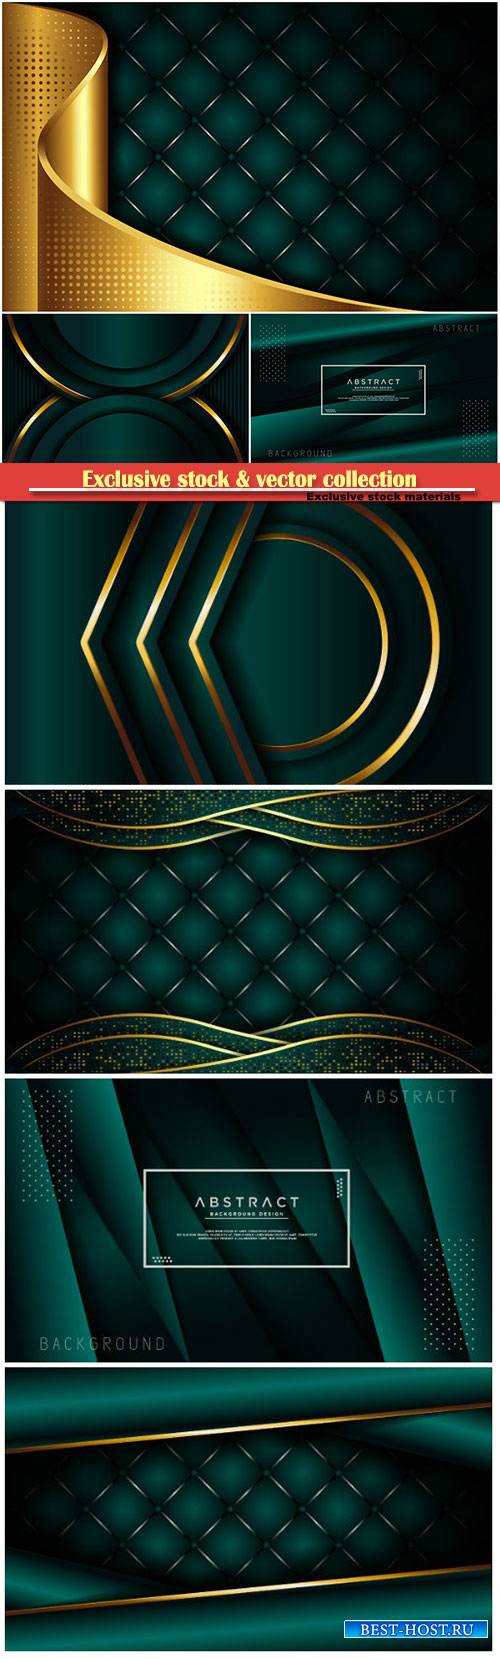 Luxury dark green background with overlap layer